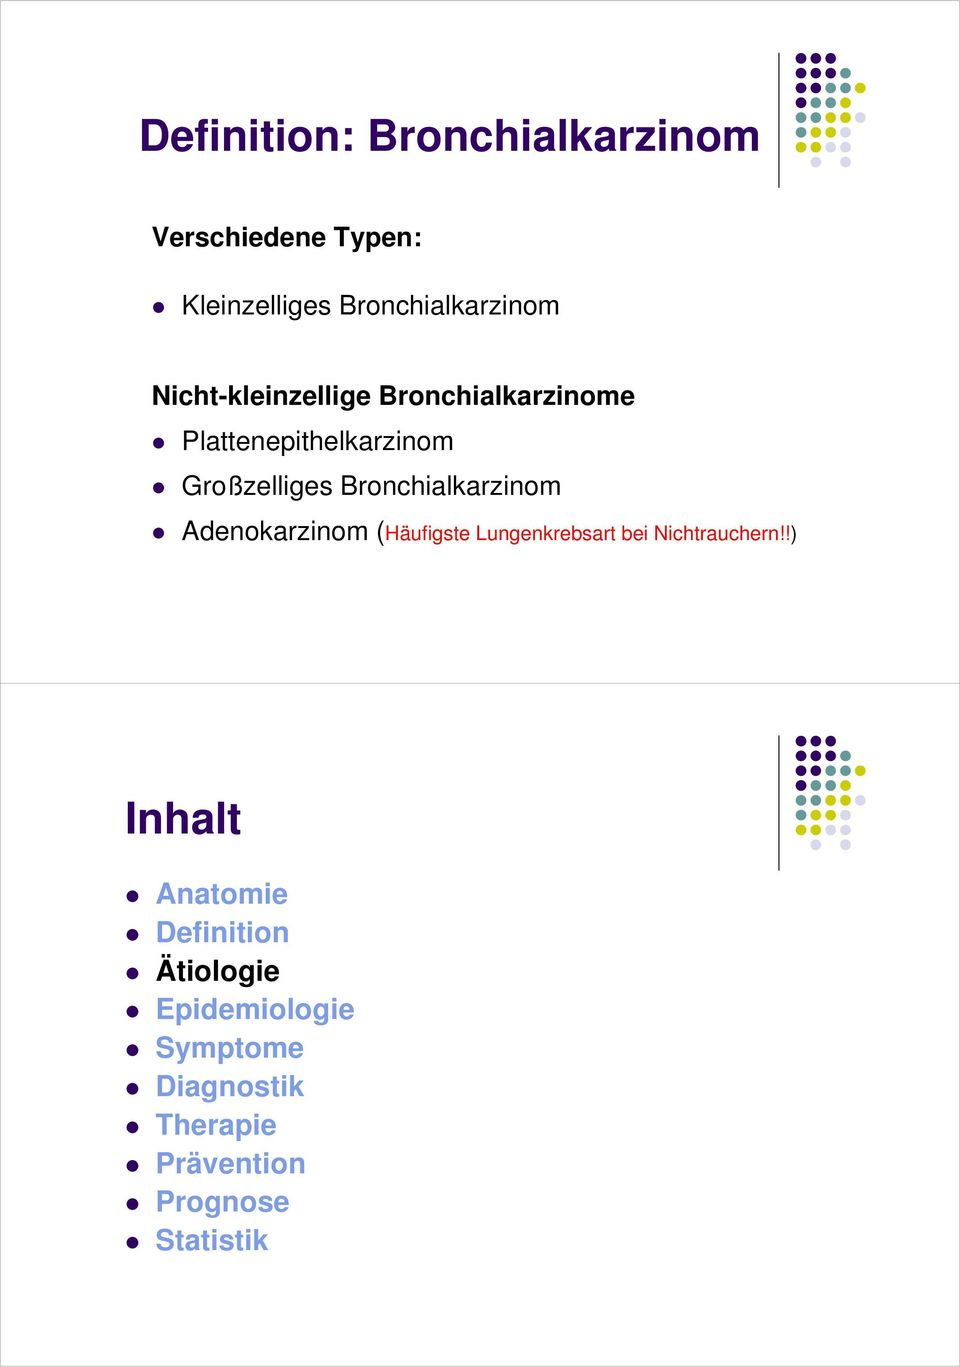 Lungenkrebs. Inhalt. (Bronchialkarzinom) Anatomie Definition ...